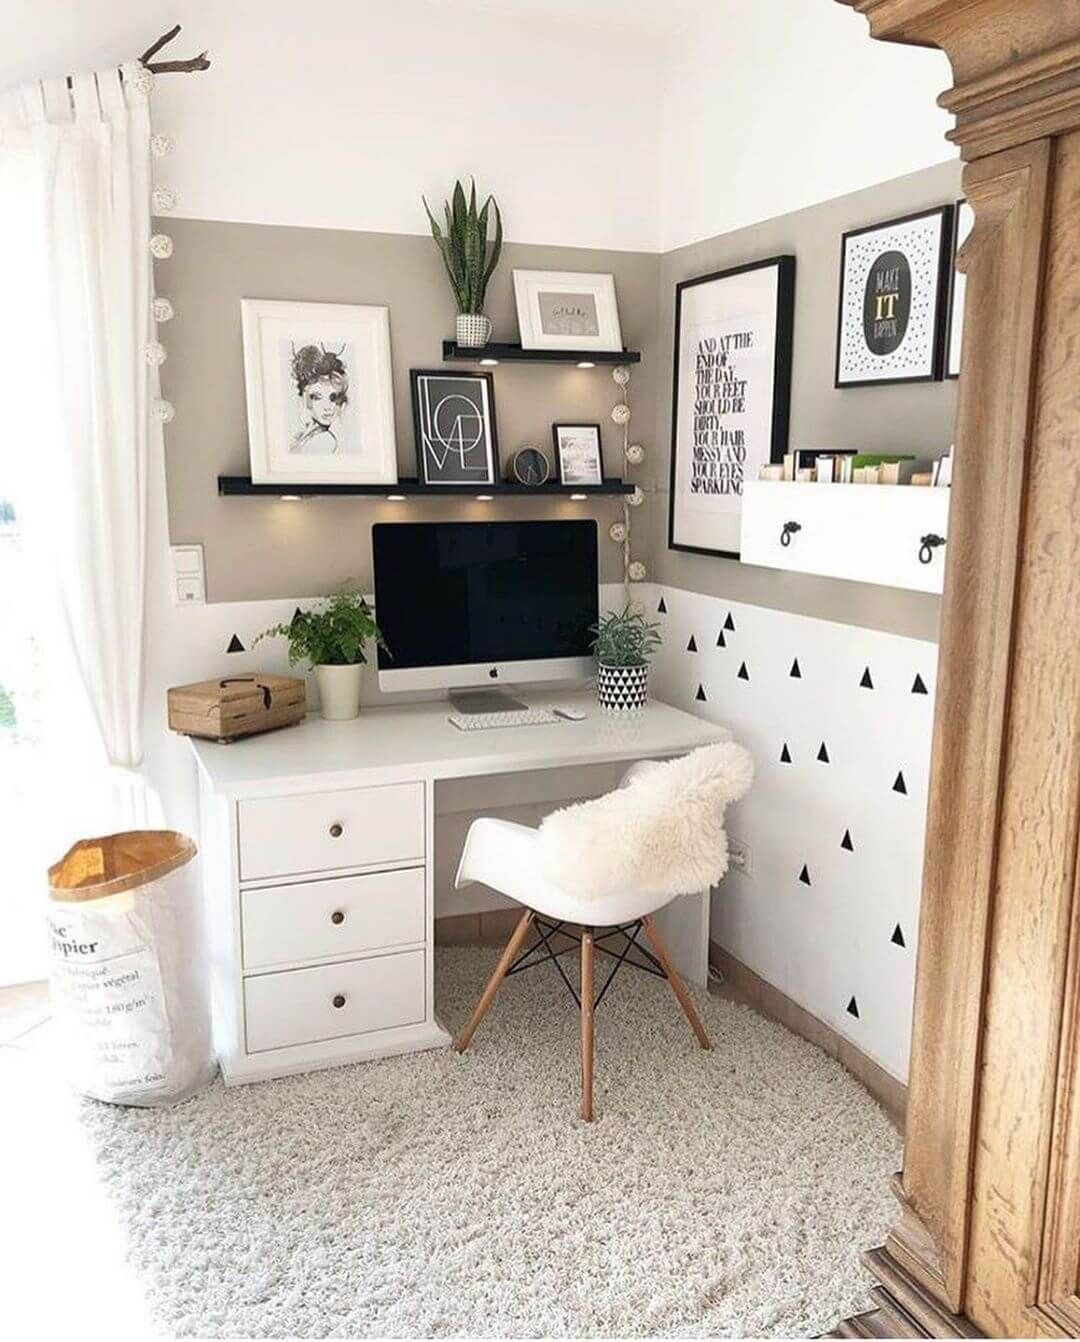 17 Amazing Corner Desk Ideas To Build For Small Office Spaces Study Room Small Home Office Design Small Space Office